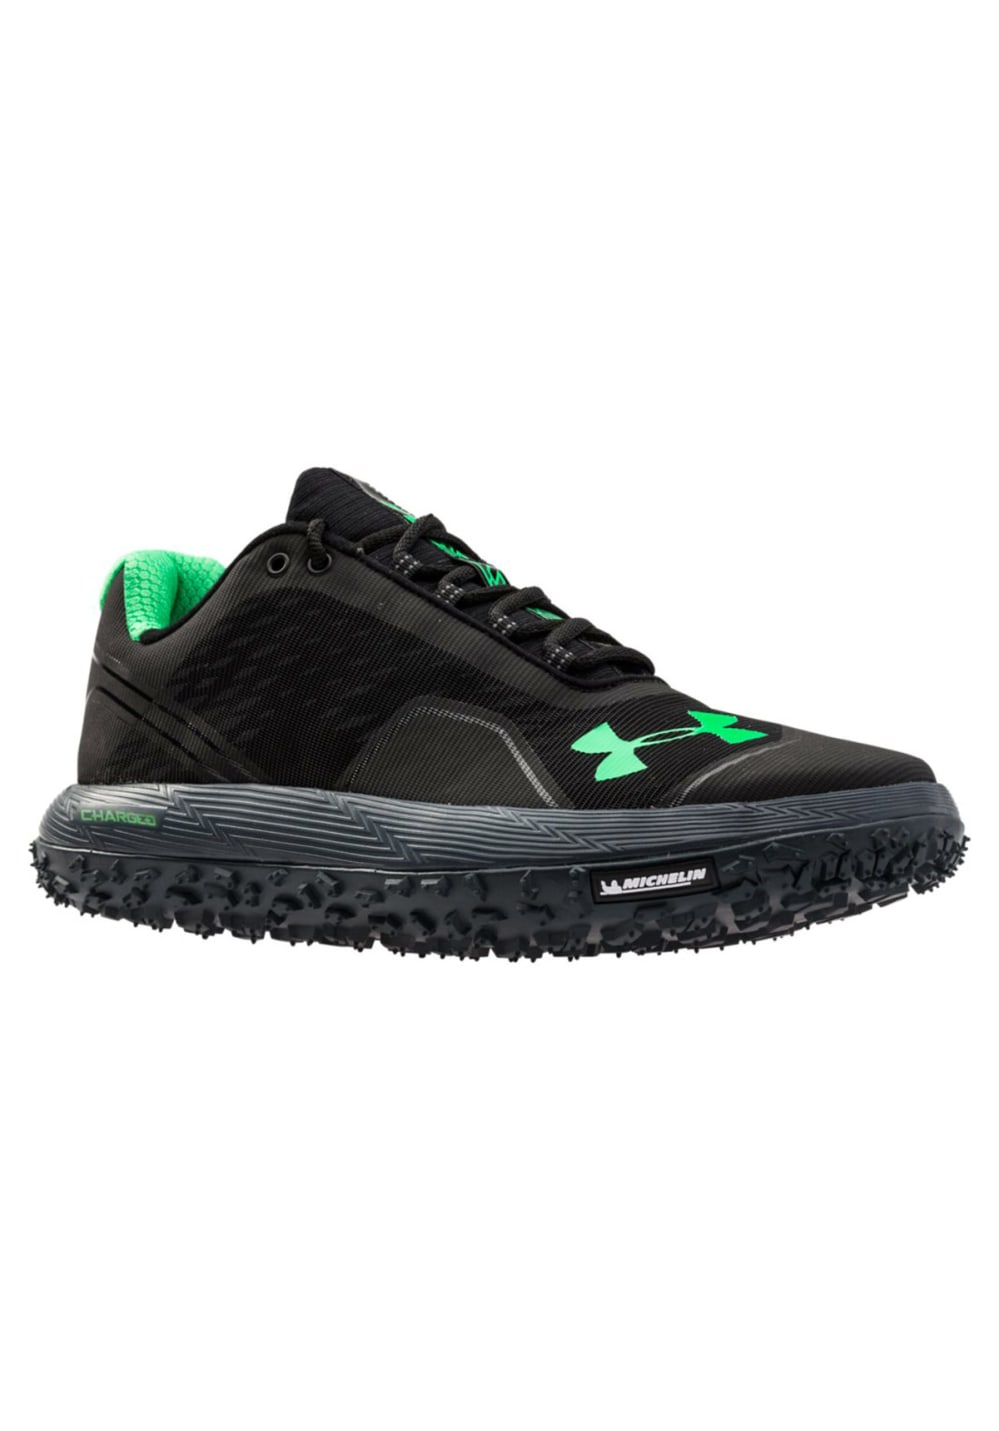 buy popular d94b1 a21ca Under Armour Fat Tire Low Night - Running shoes for Men - Black